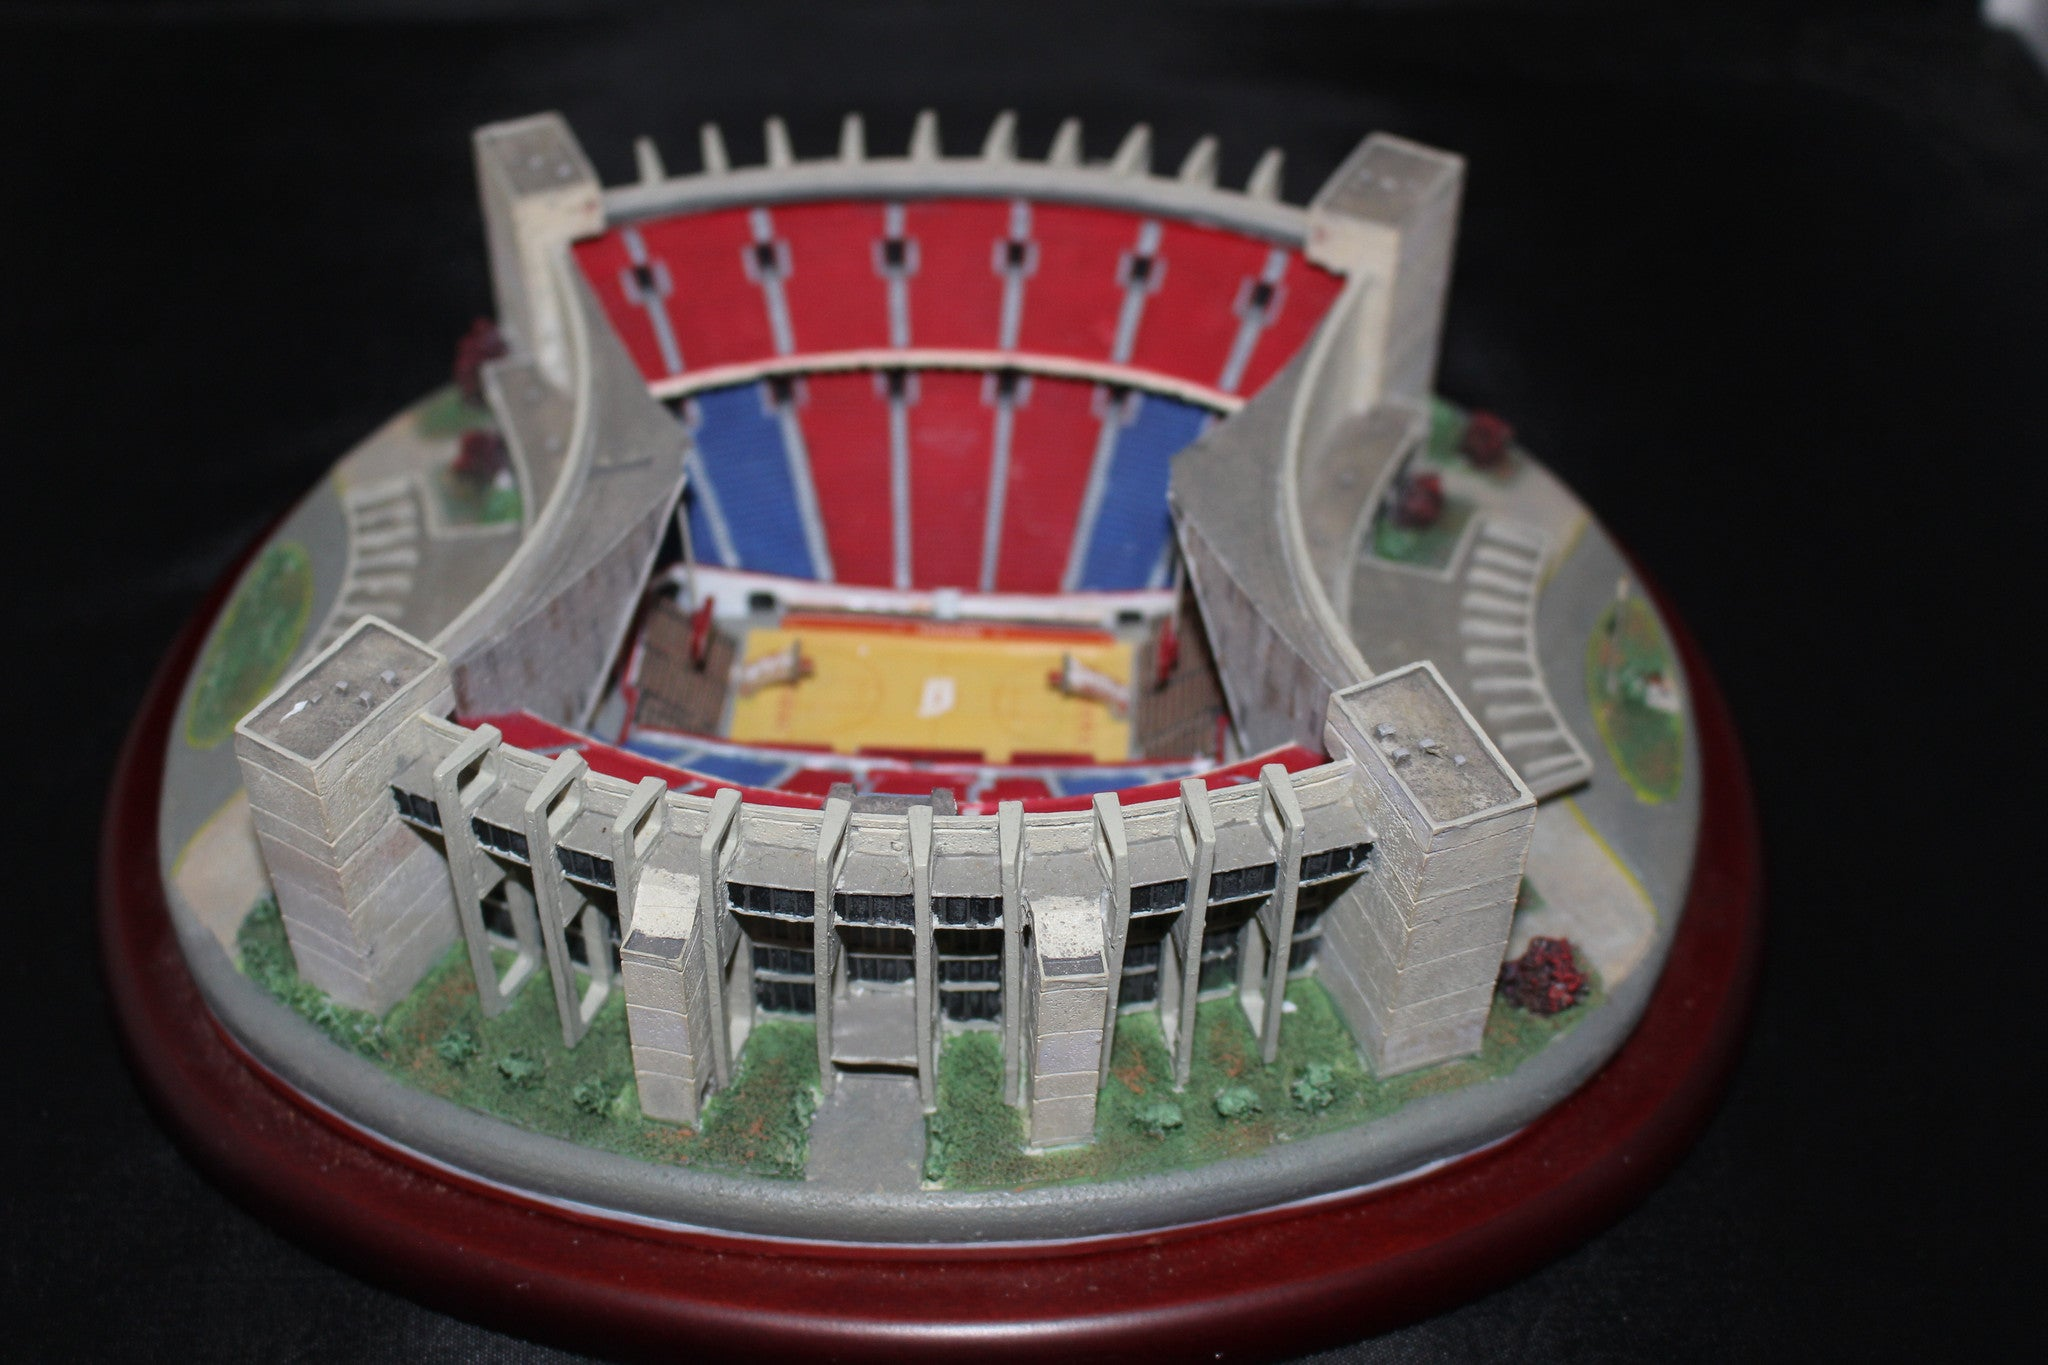 Indiana University Assembly Hall Danbury Mint Replica - Vintage Indy Sports